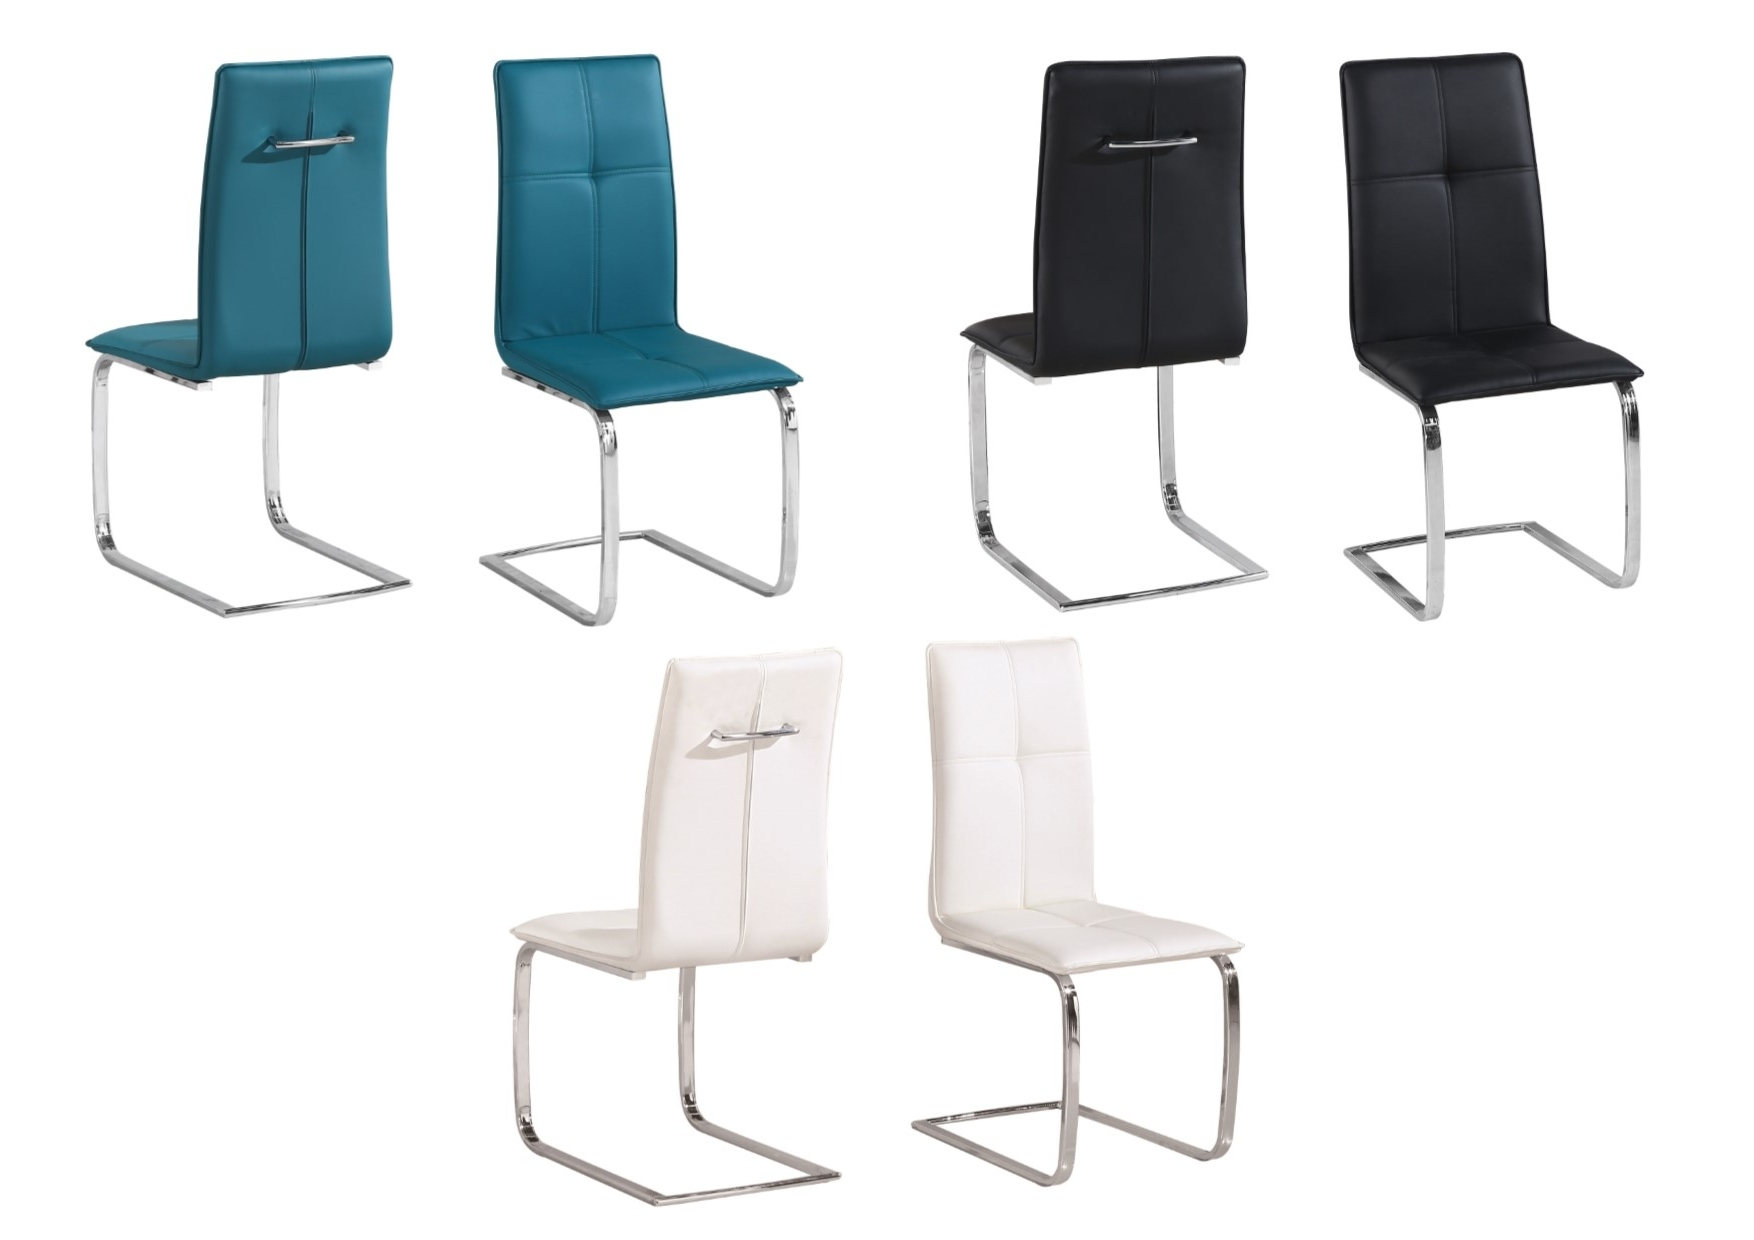 Chrome Dining Chairs Intended For 2018 Lpd Opus Faux Leather & Chrome Dining Chairs – Black, Teal, White (Gallery 18 of 25)